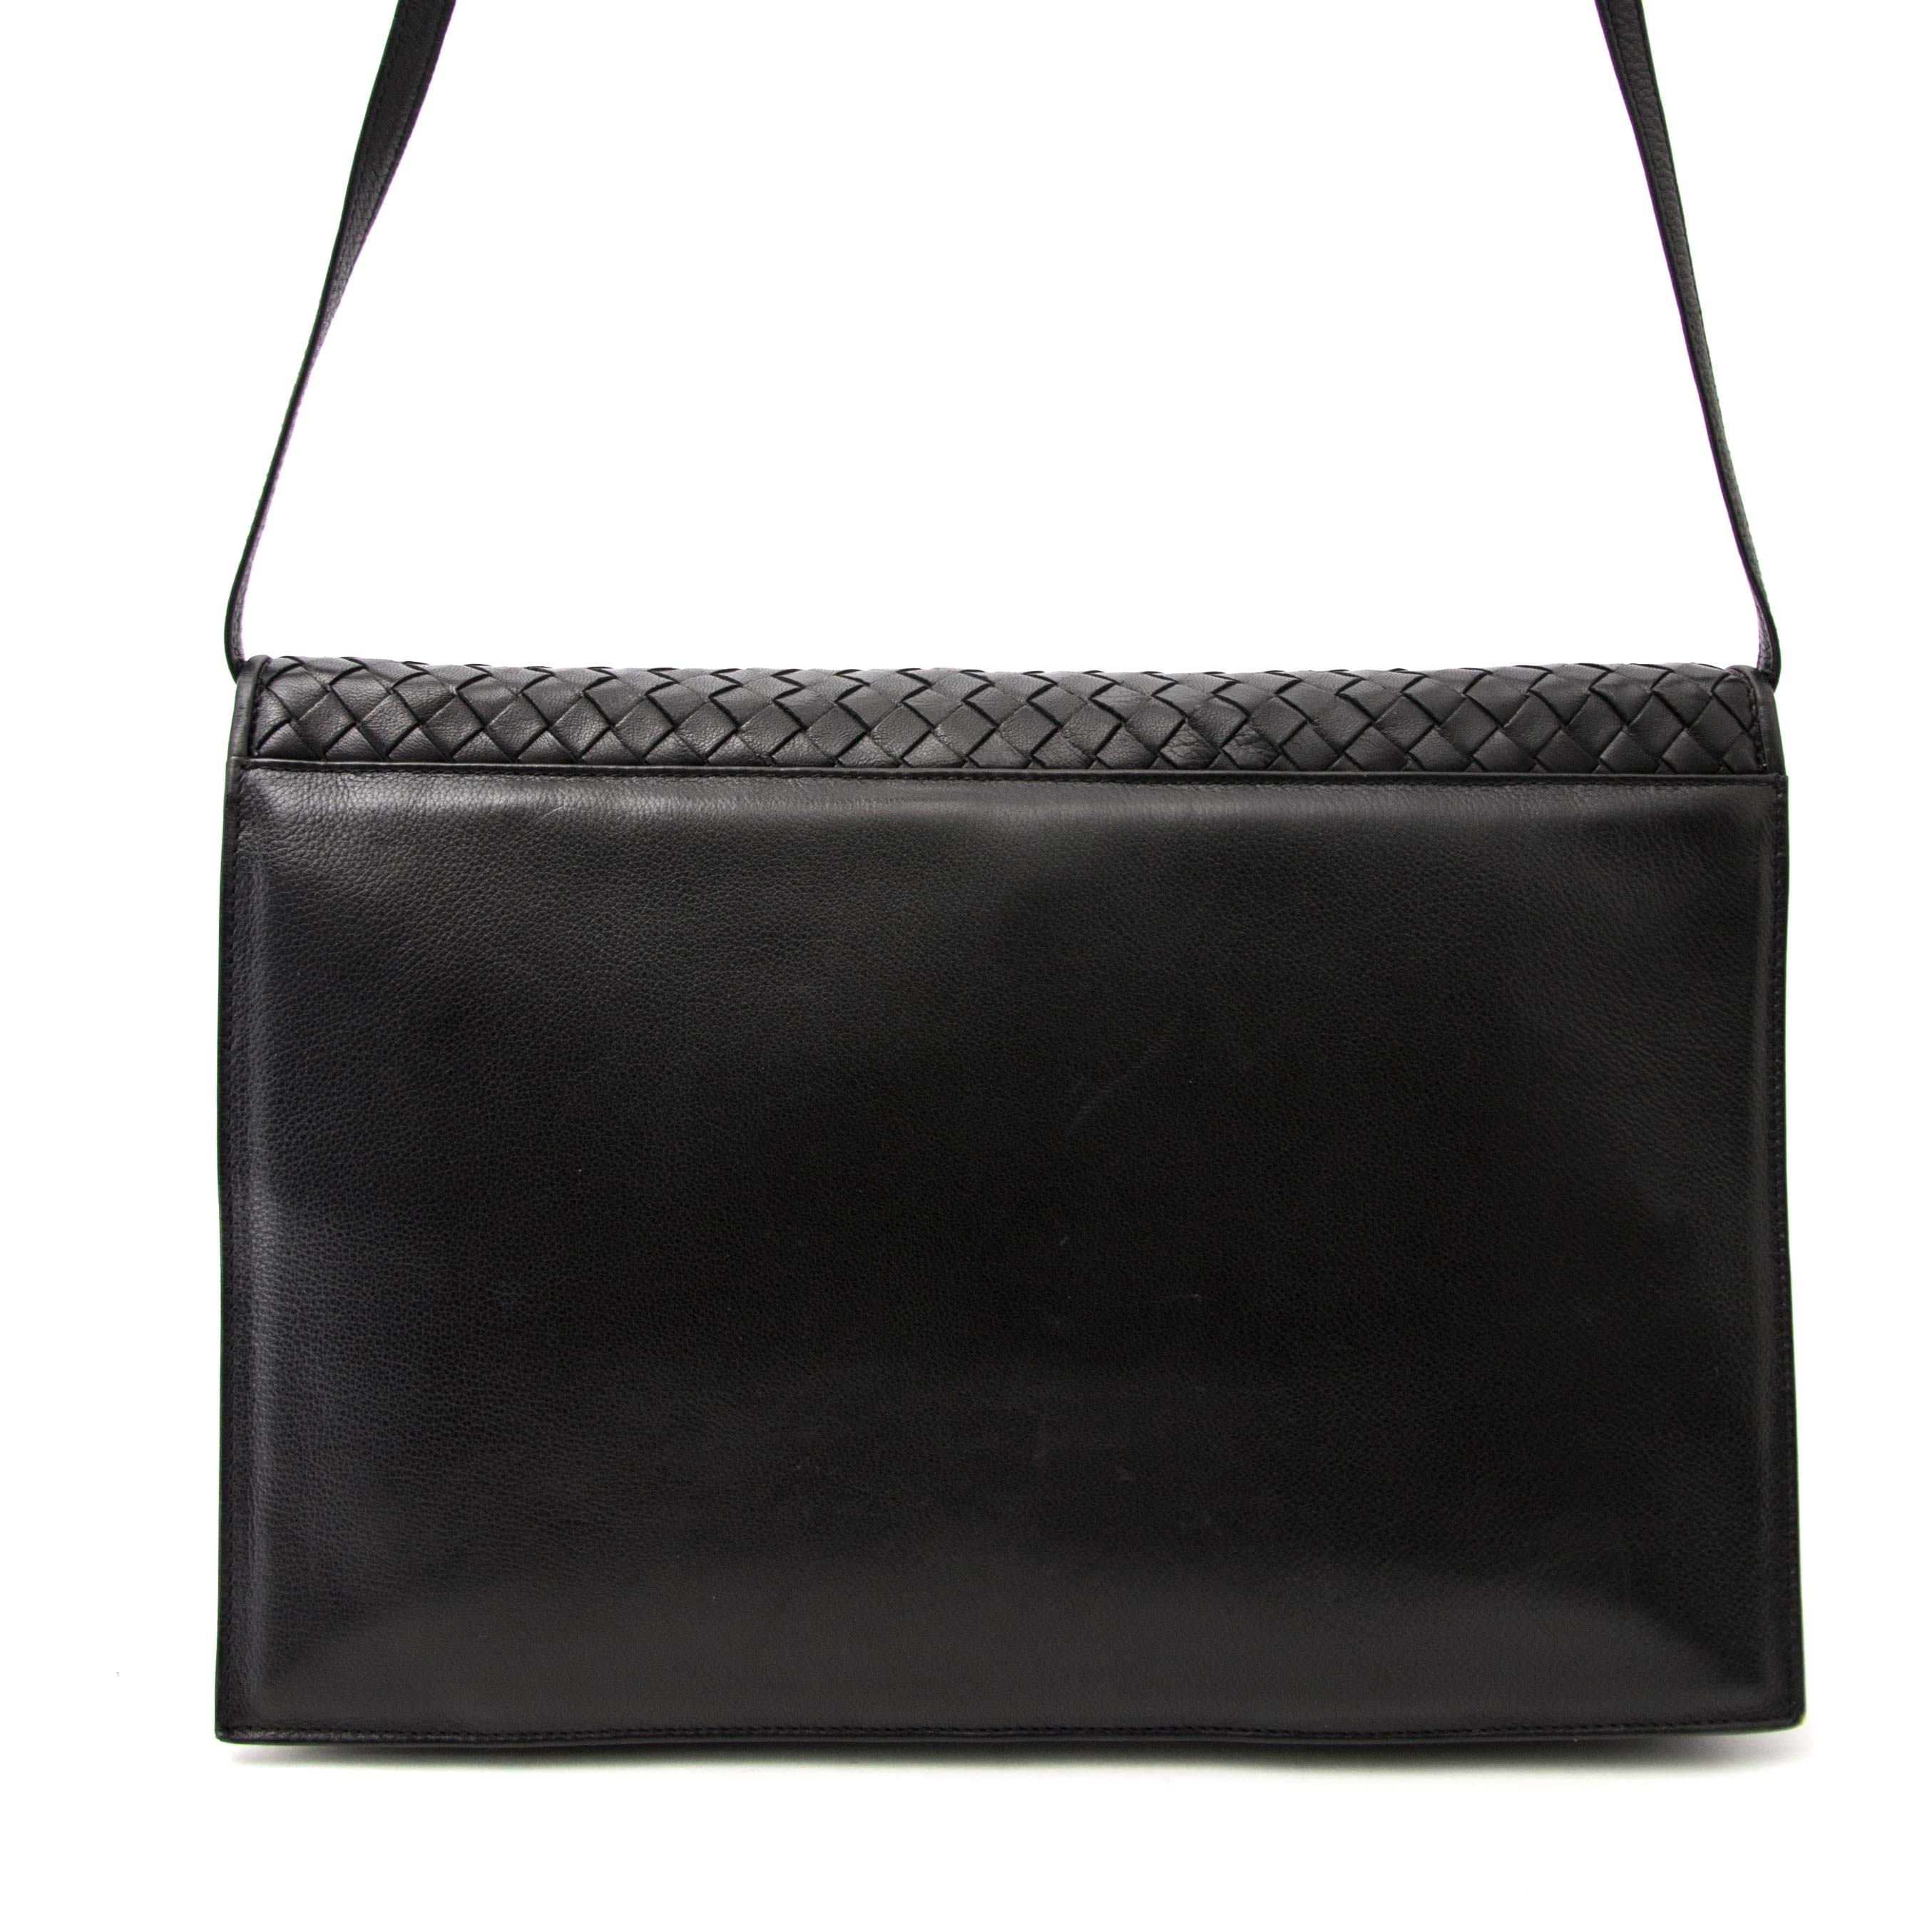 celine black woven leather clutch bag now online at labellov.com